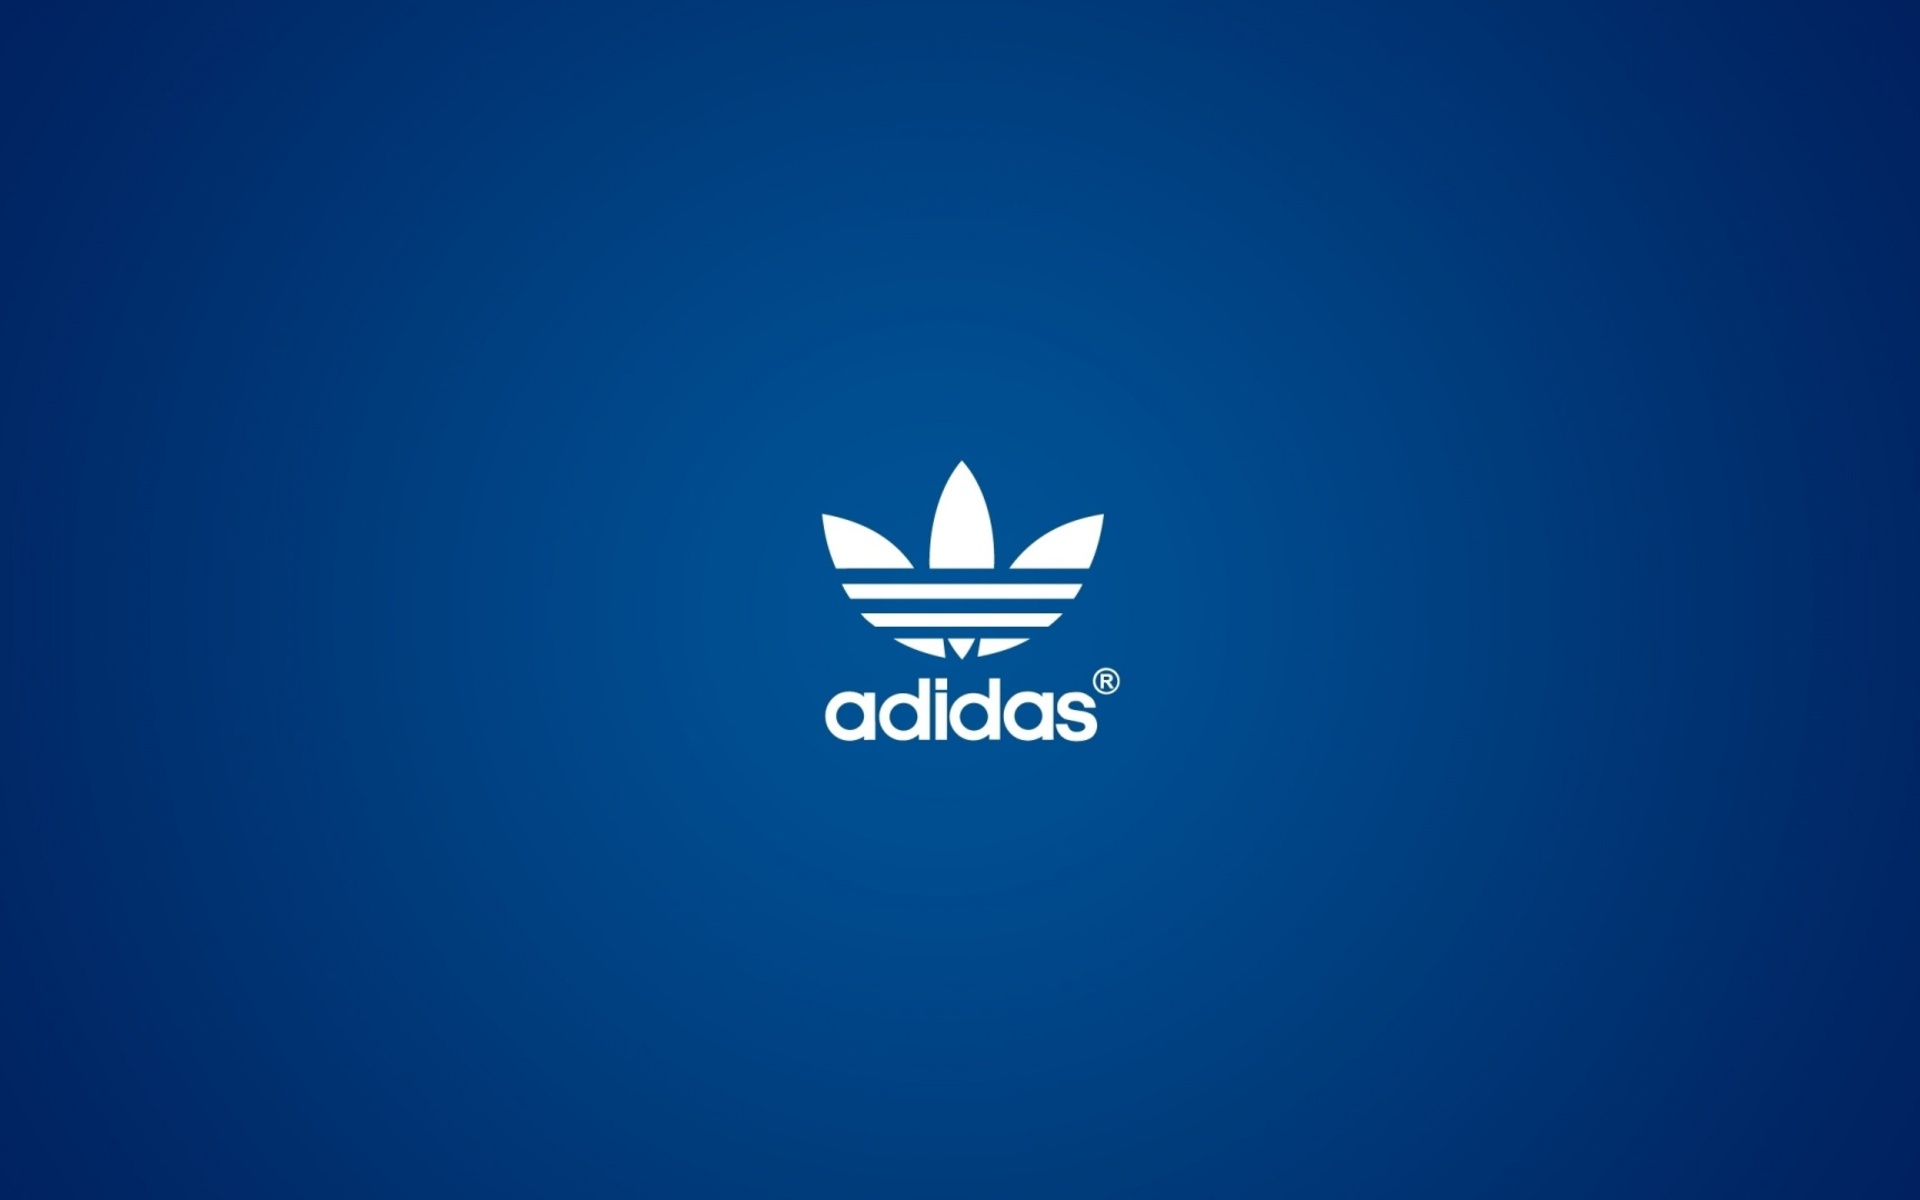 adidas wallpaper hd related keywords adidas wallpaper hd